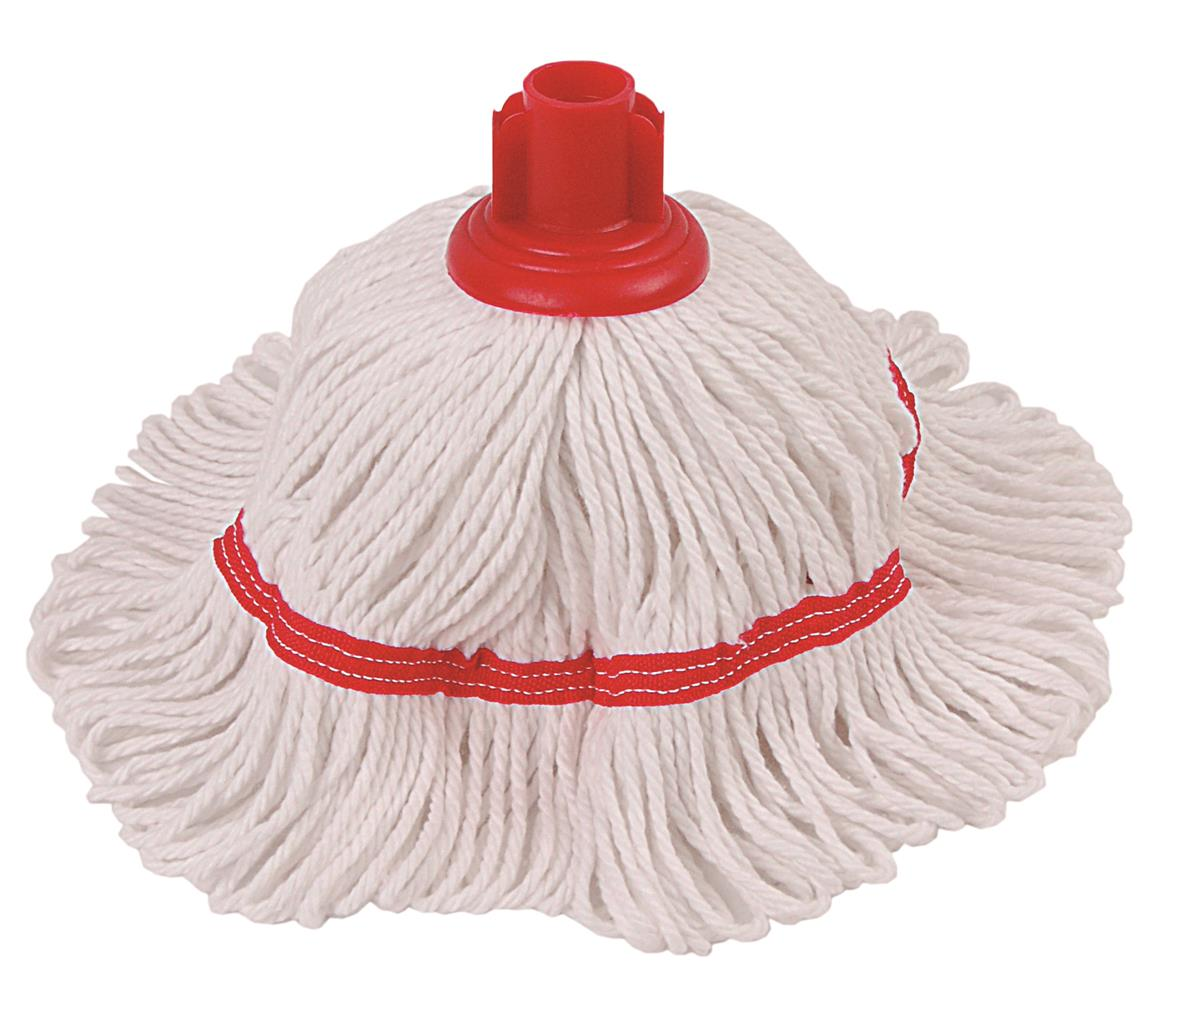 Robert Scott & Sons Hygiemix T1 Socket Mop Cotton & Synthetic Yarn Colour-coded 200g Red Ref 103062RED